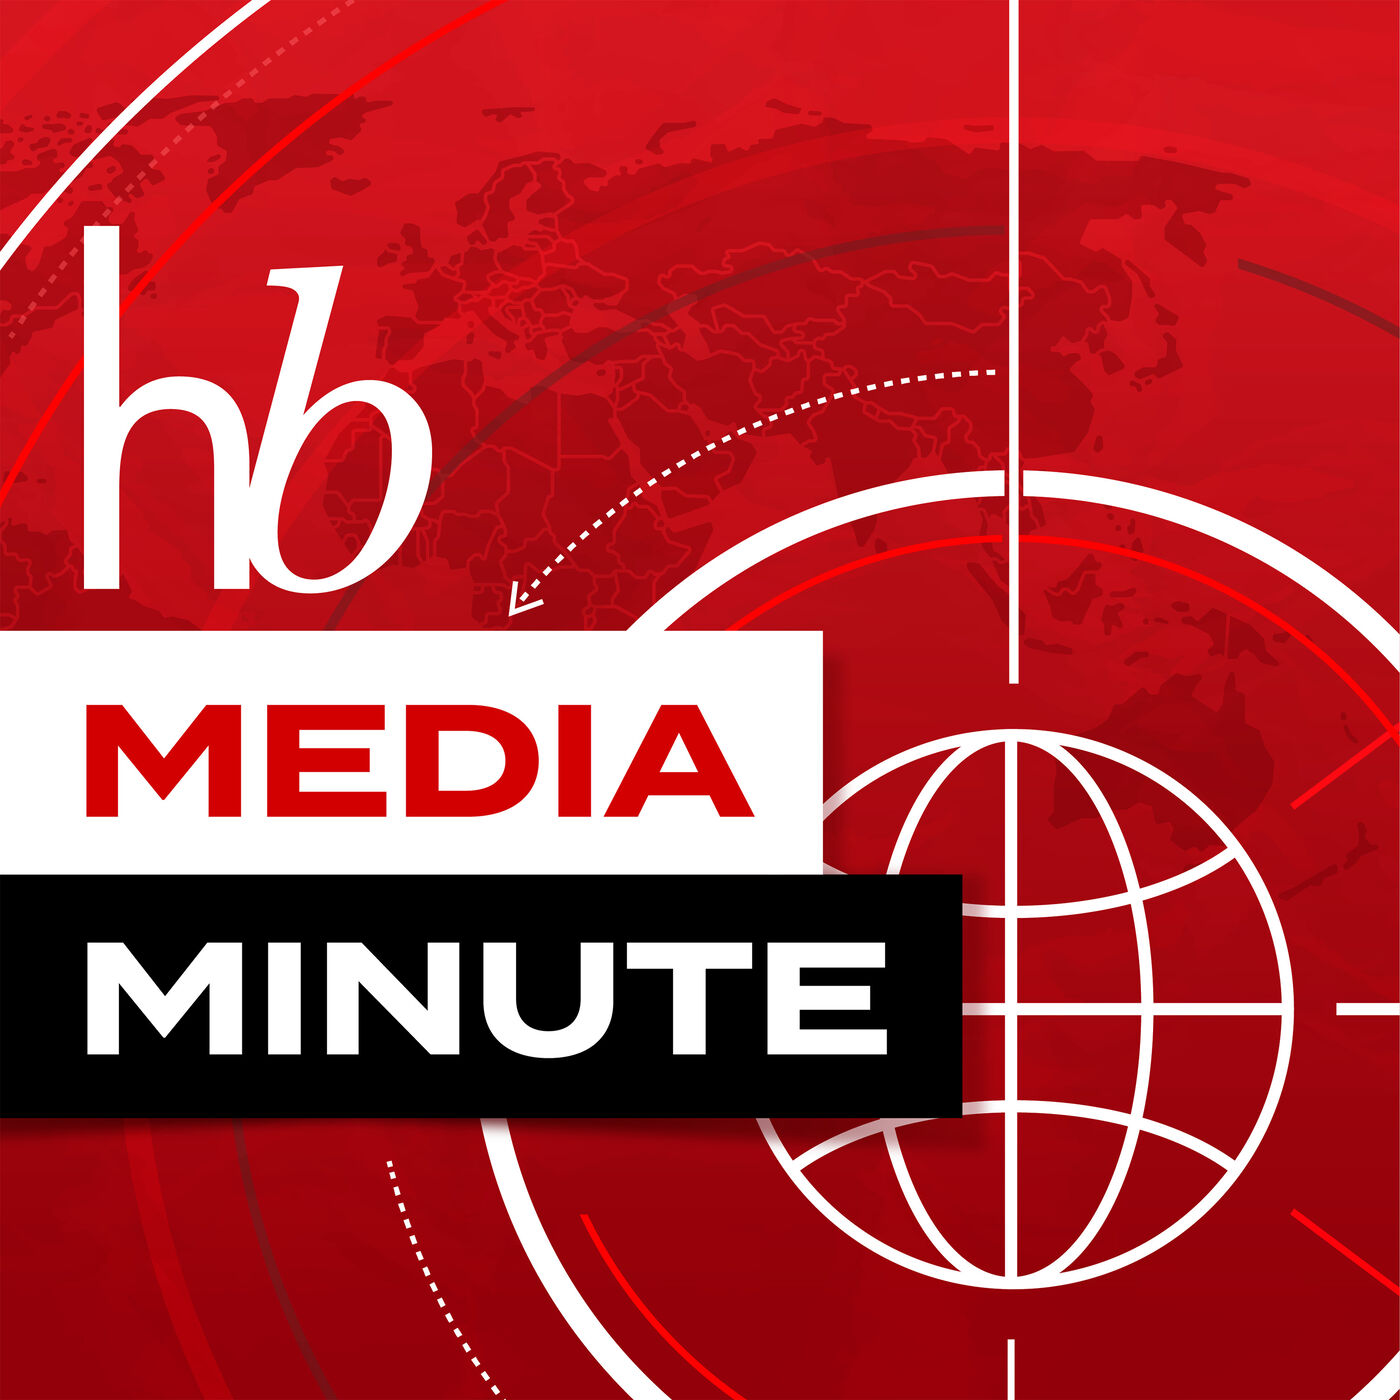 HB Media Minute Episode 2 - Trends in ISP and Platform Liability: CDA Section 230 and DMCA Safe Harbors